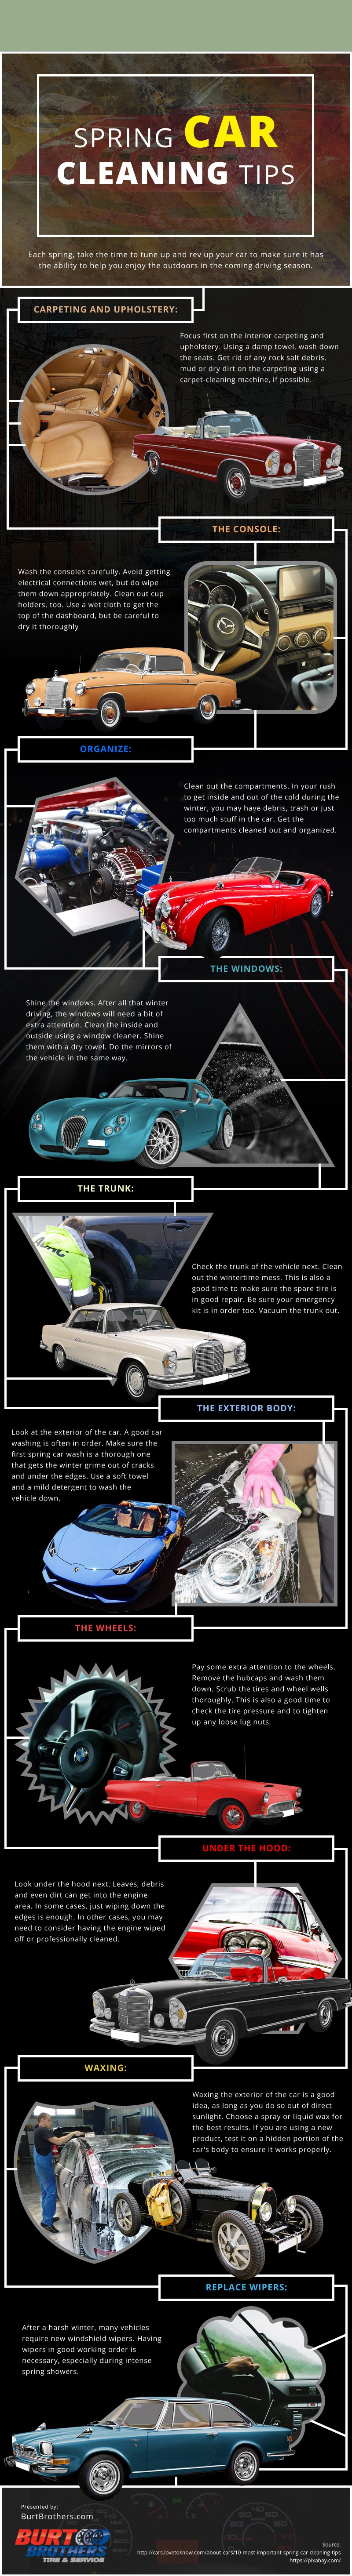 Spring Car Cleaning Tips [infographic]